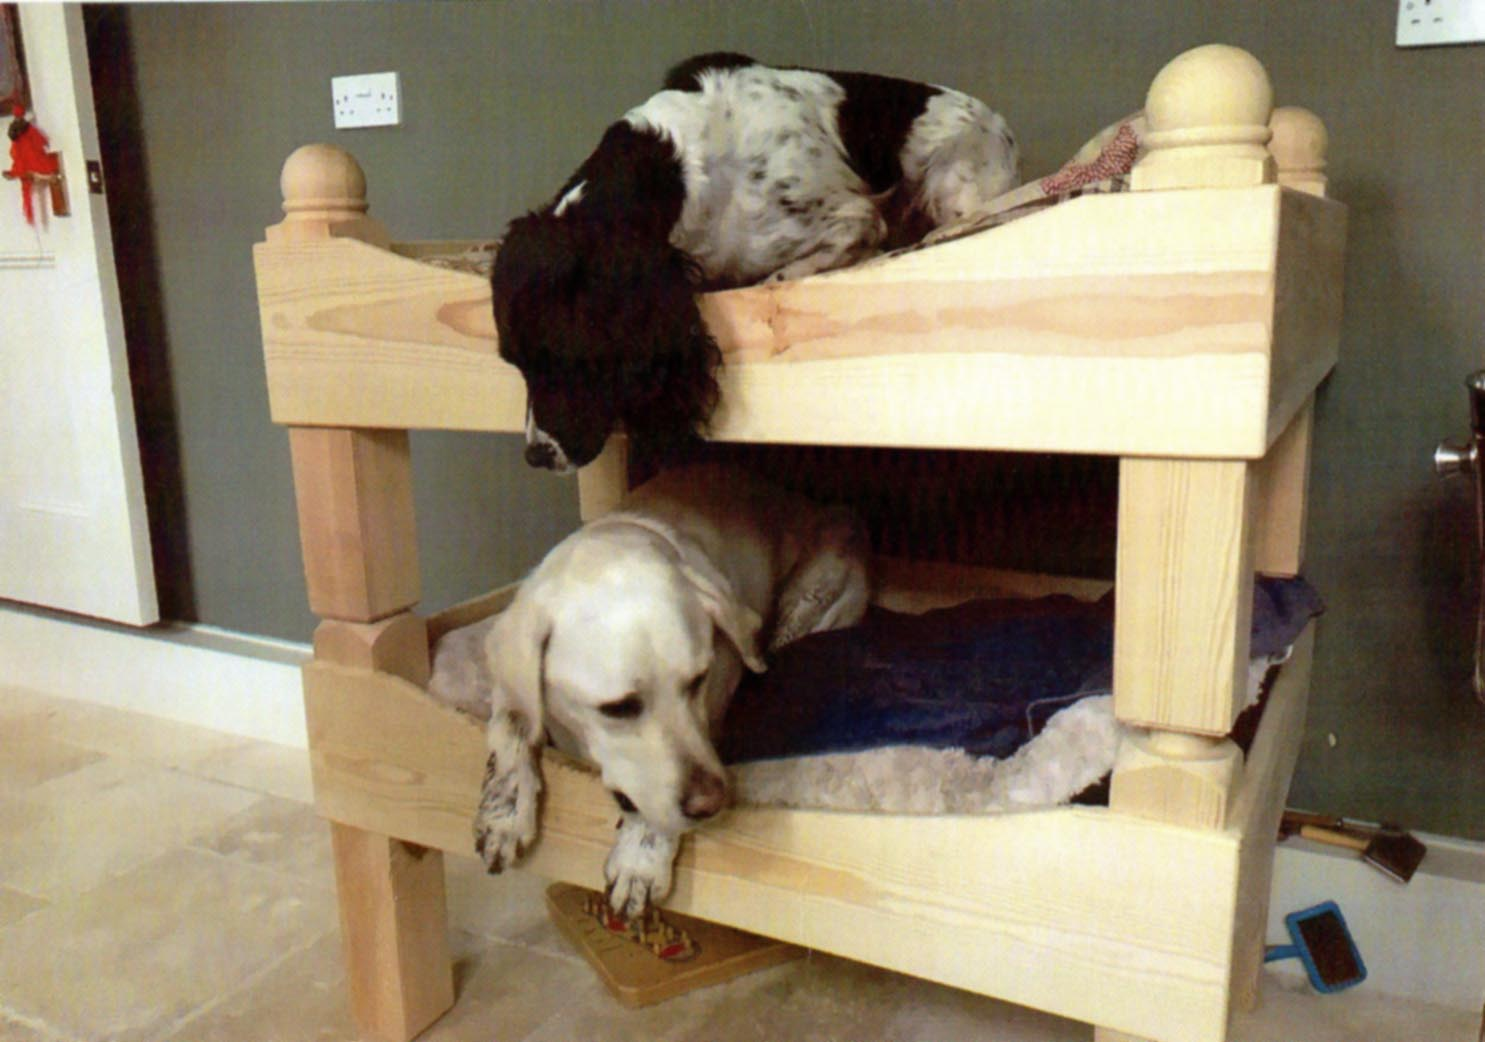 Dog bunk beds with a dog in each bunk. The dog in the top bunk is leaning over sniffing the the dog in the bottom bunk